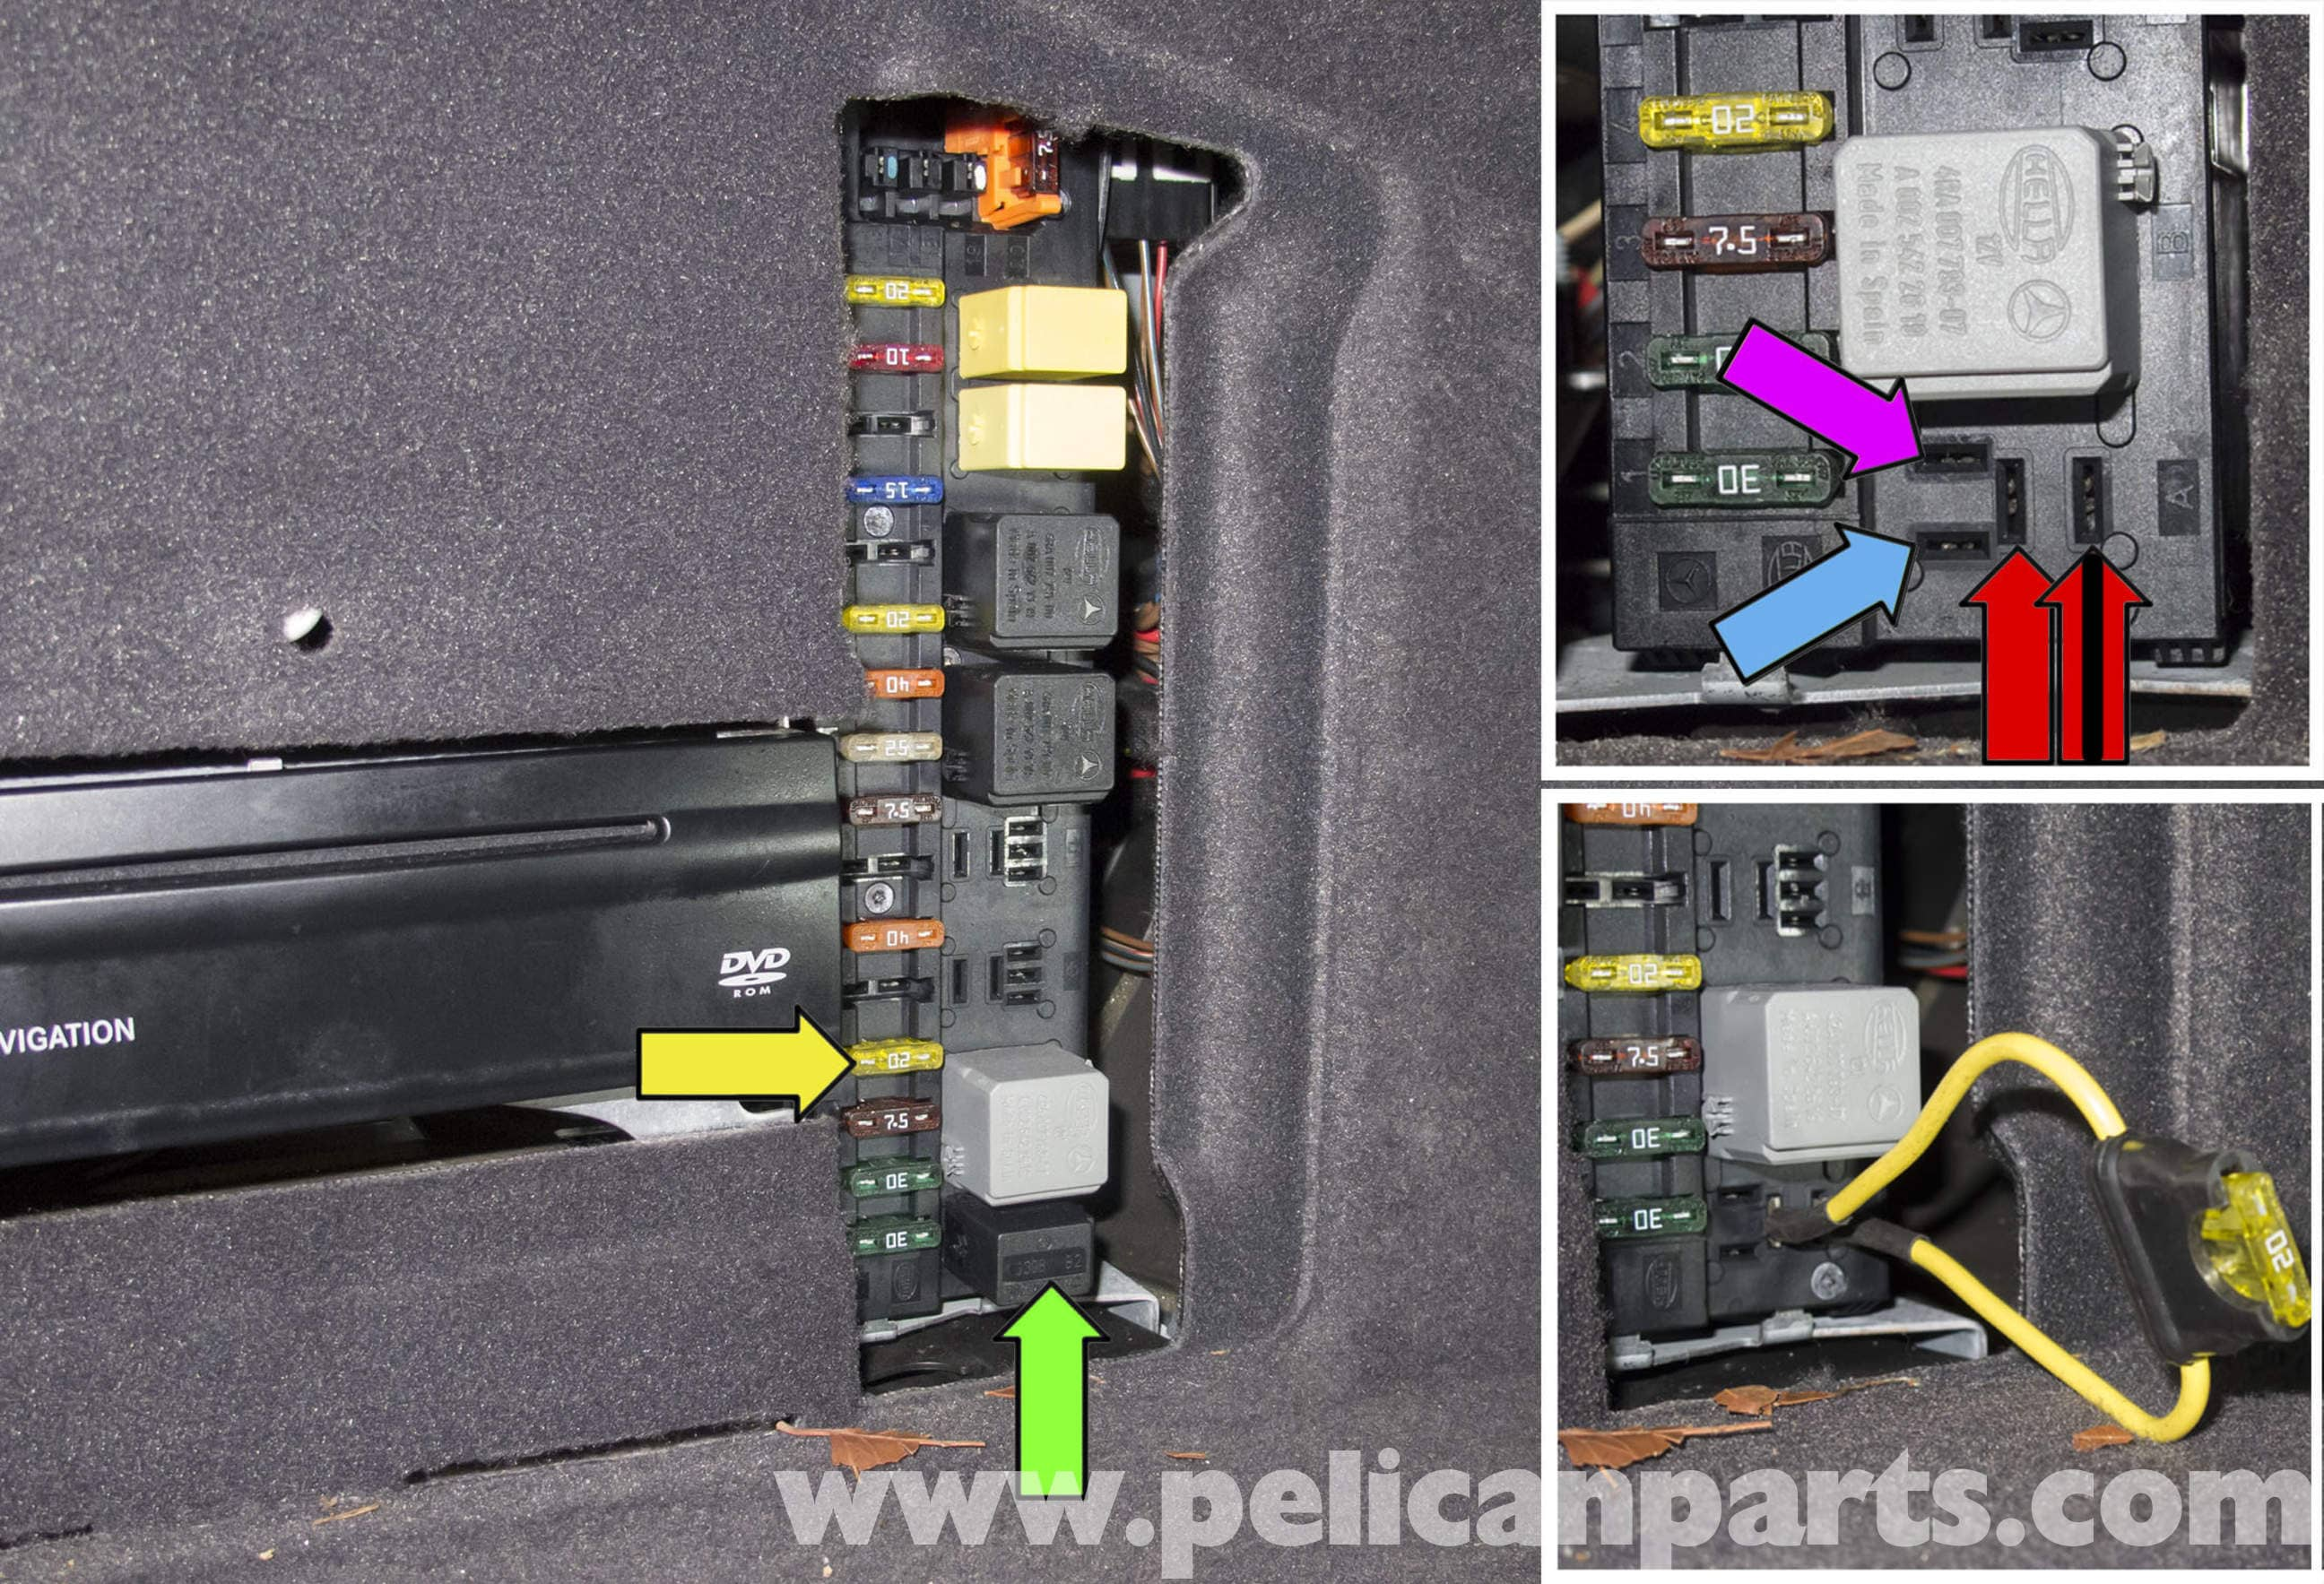 E55 fuel pump relay wiring diy wiring diagrams mercedes benz w211 fuel pump testing 2003 2009 e320 pelican rh pelicanparts com fuel pump relay circuit fuel pump relay circuit cheapraybanclubmaster